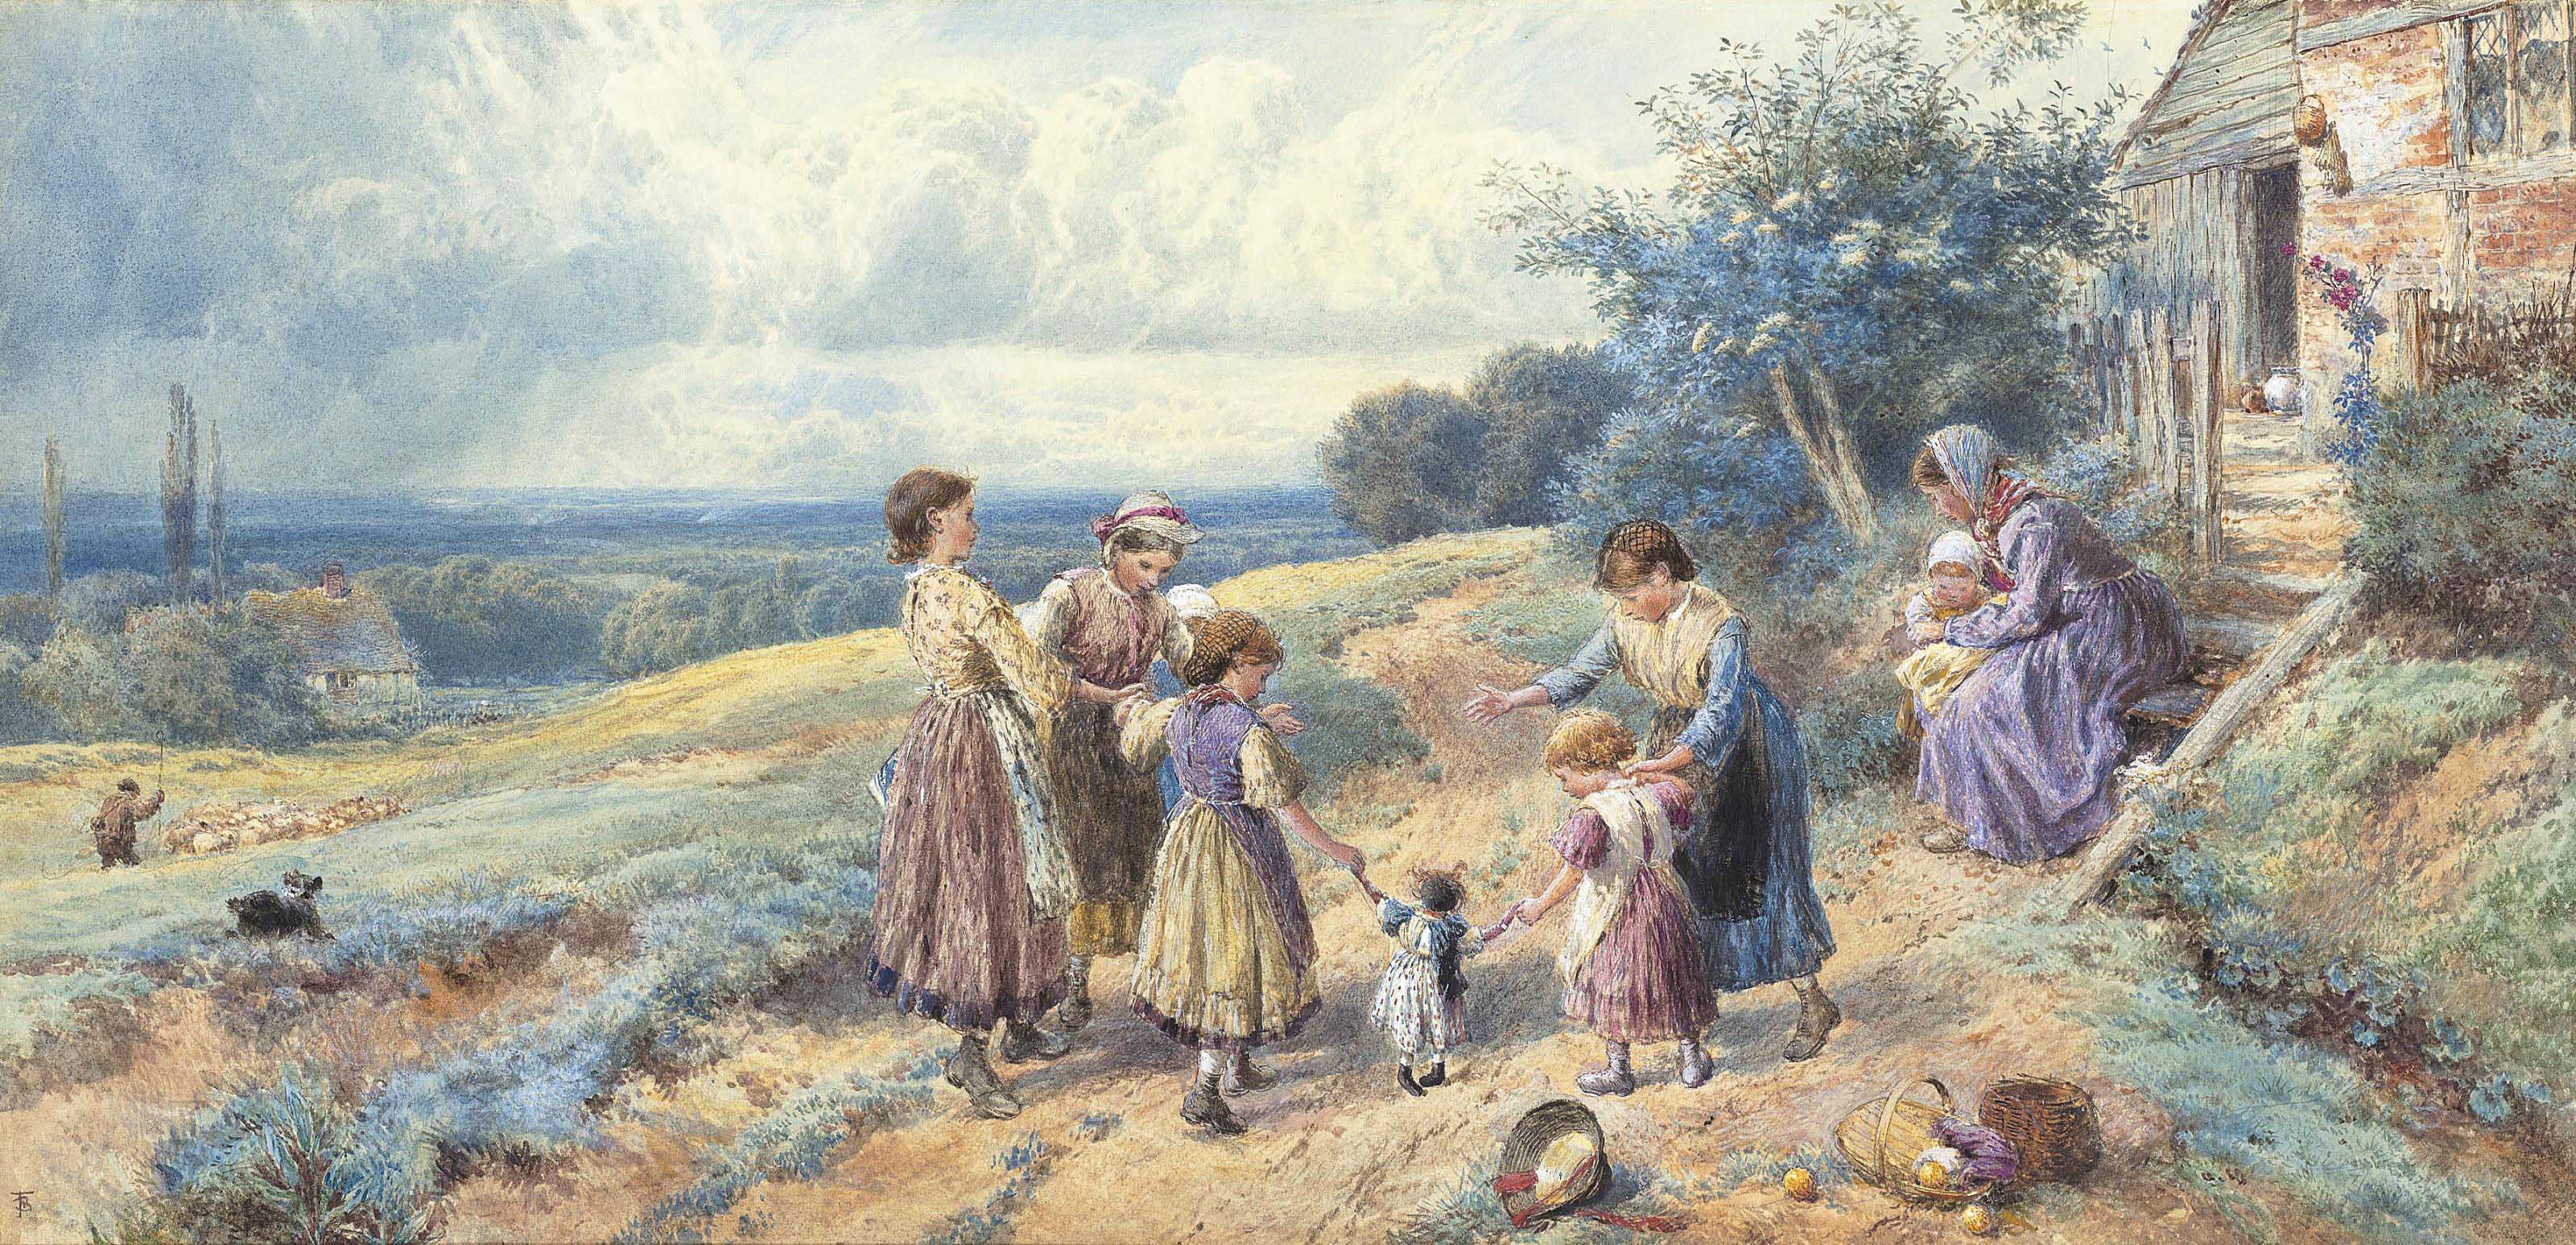 Children playing outside a farmhouse, a shepherd with his flock of sheep beyond